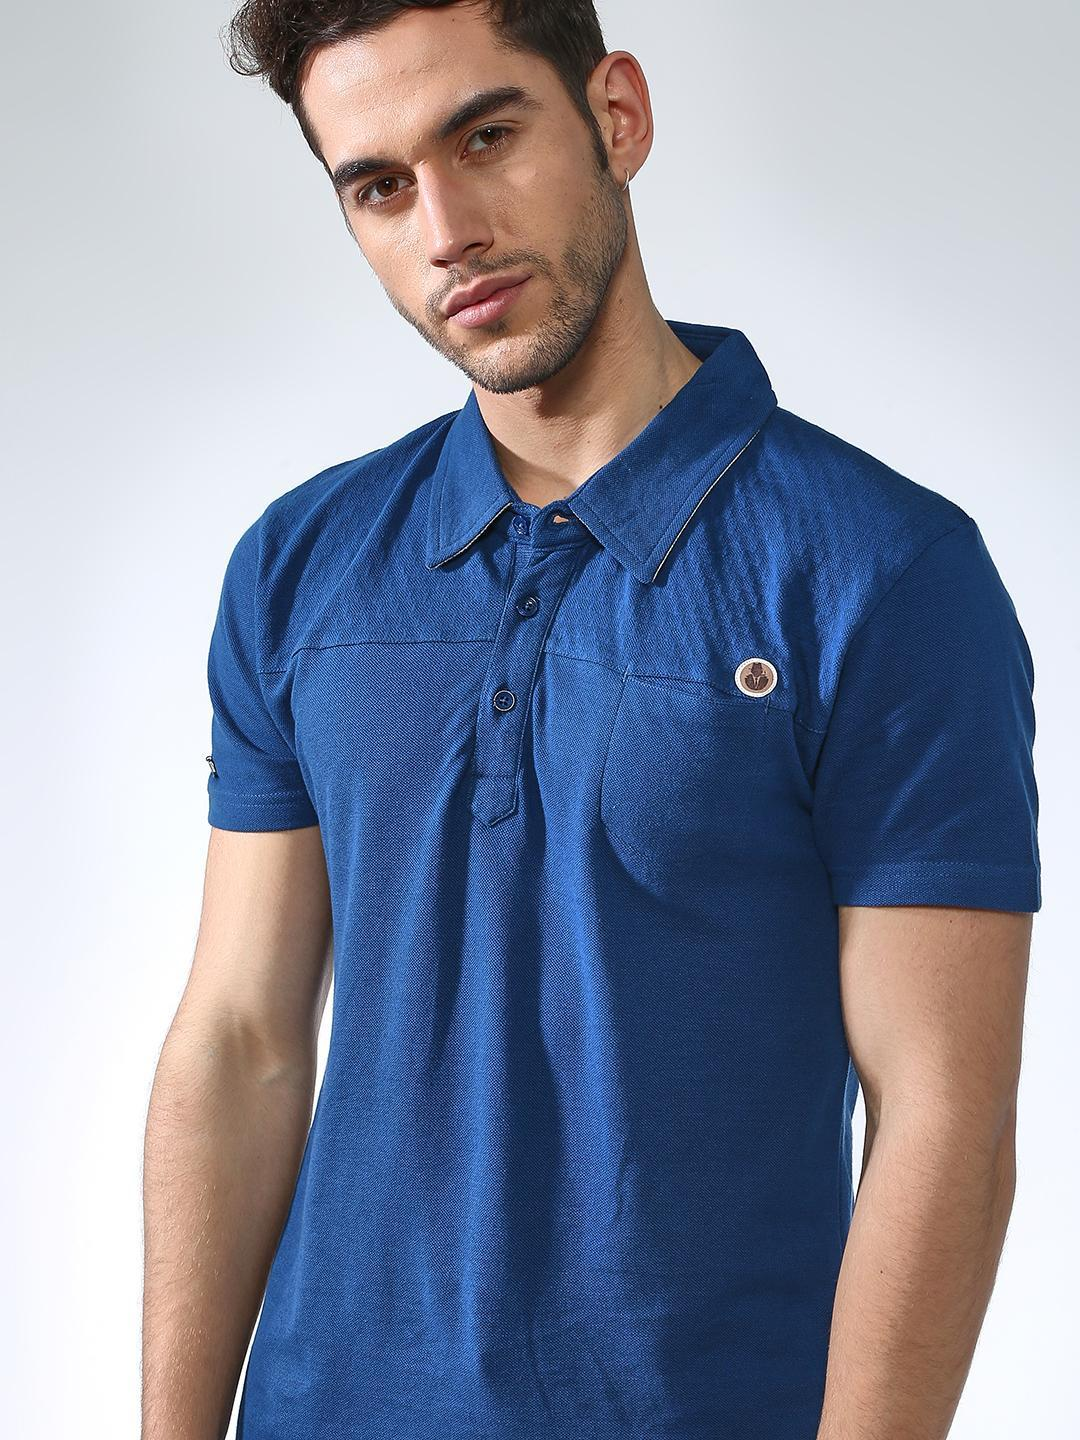 SMUGGLERZ Inc. Blue Solid Muscle Fit Polo Shirt 1